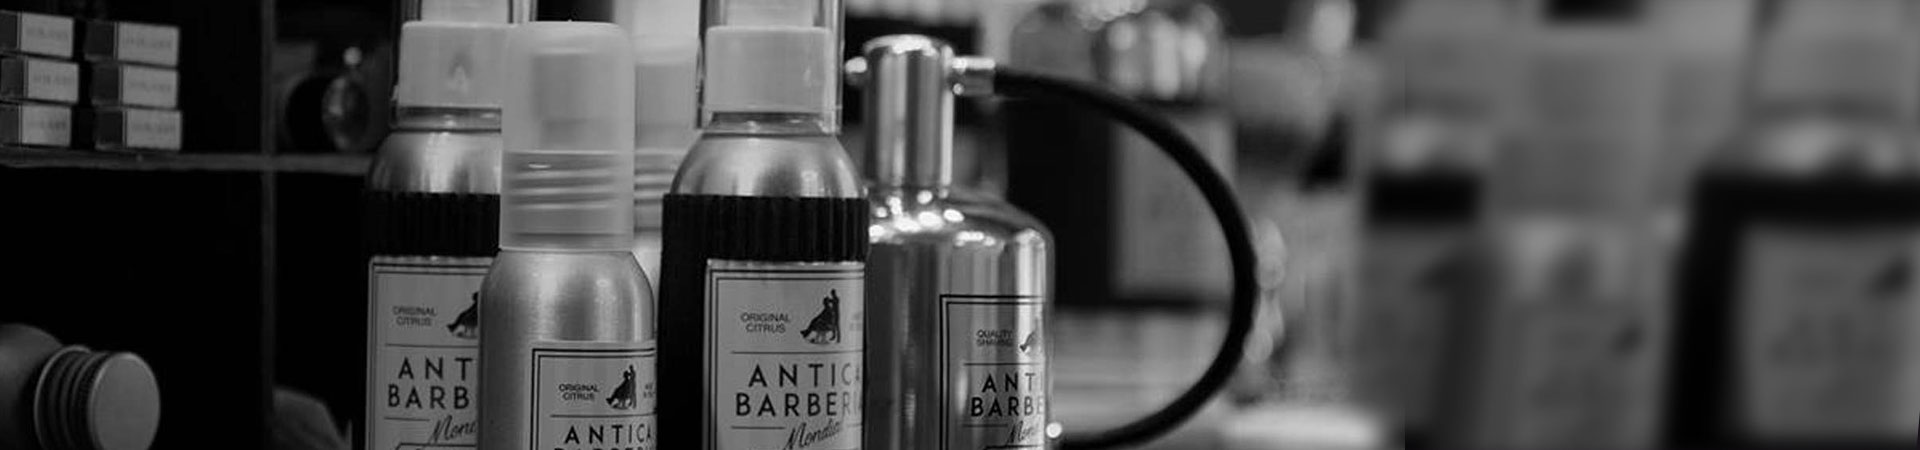 Antica Barberia shaving and beard care products